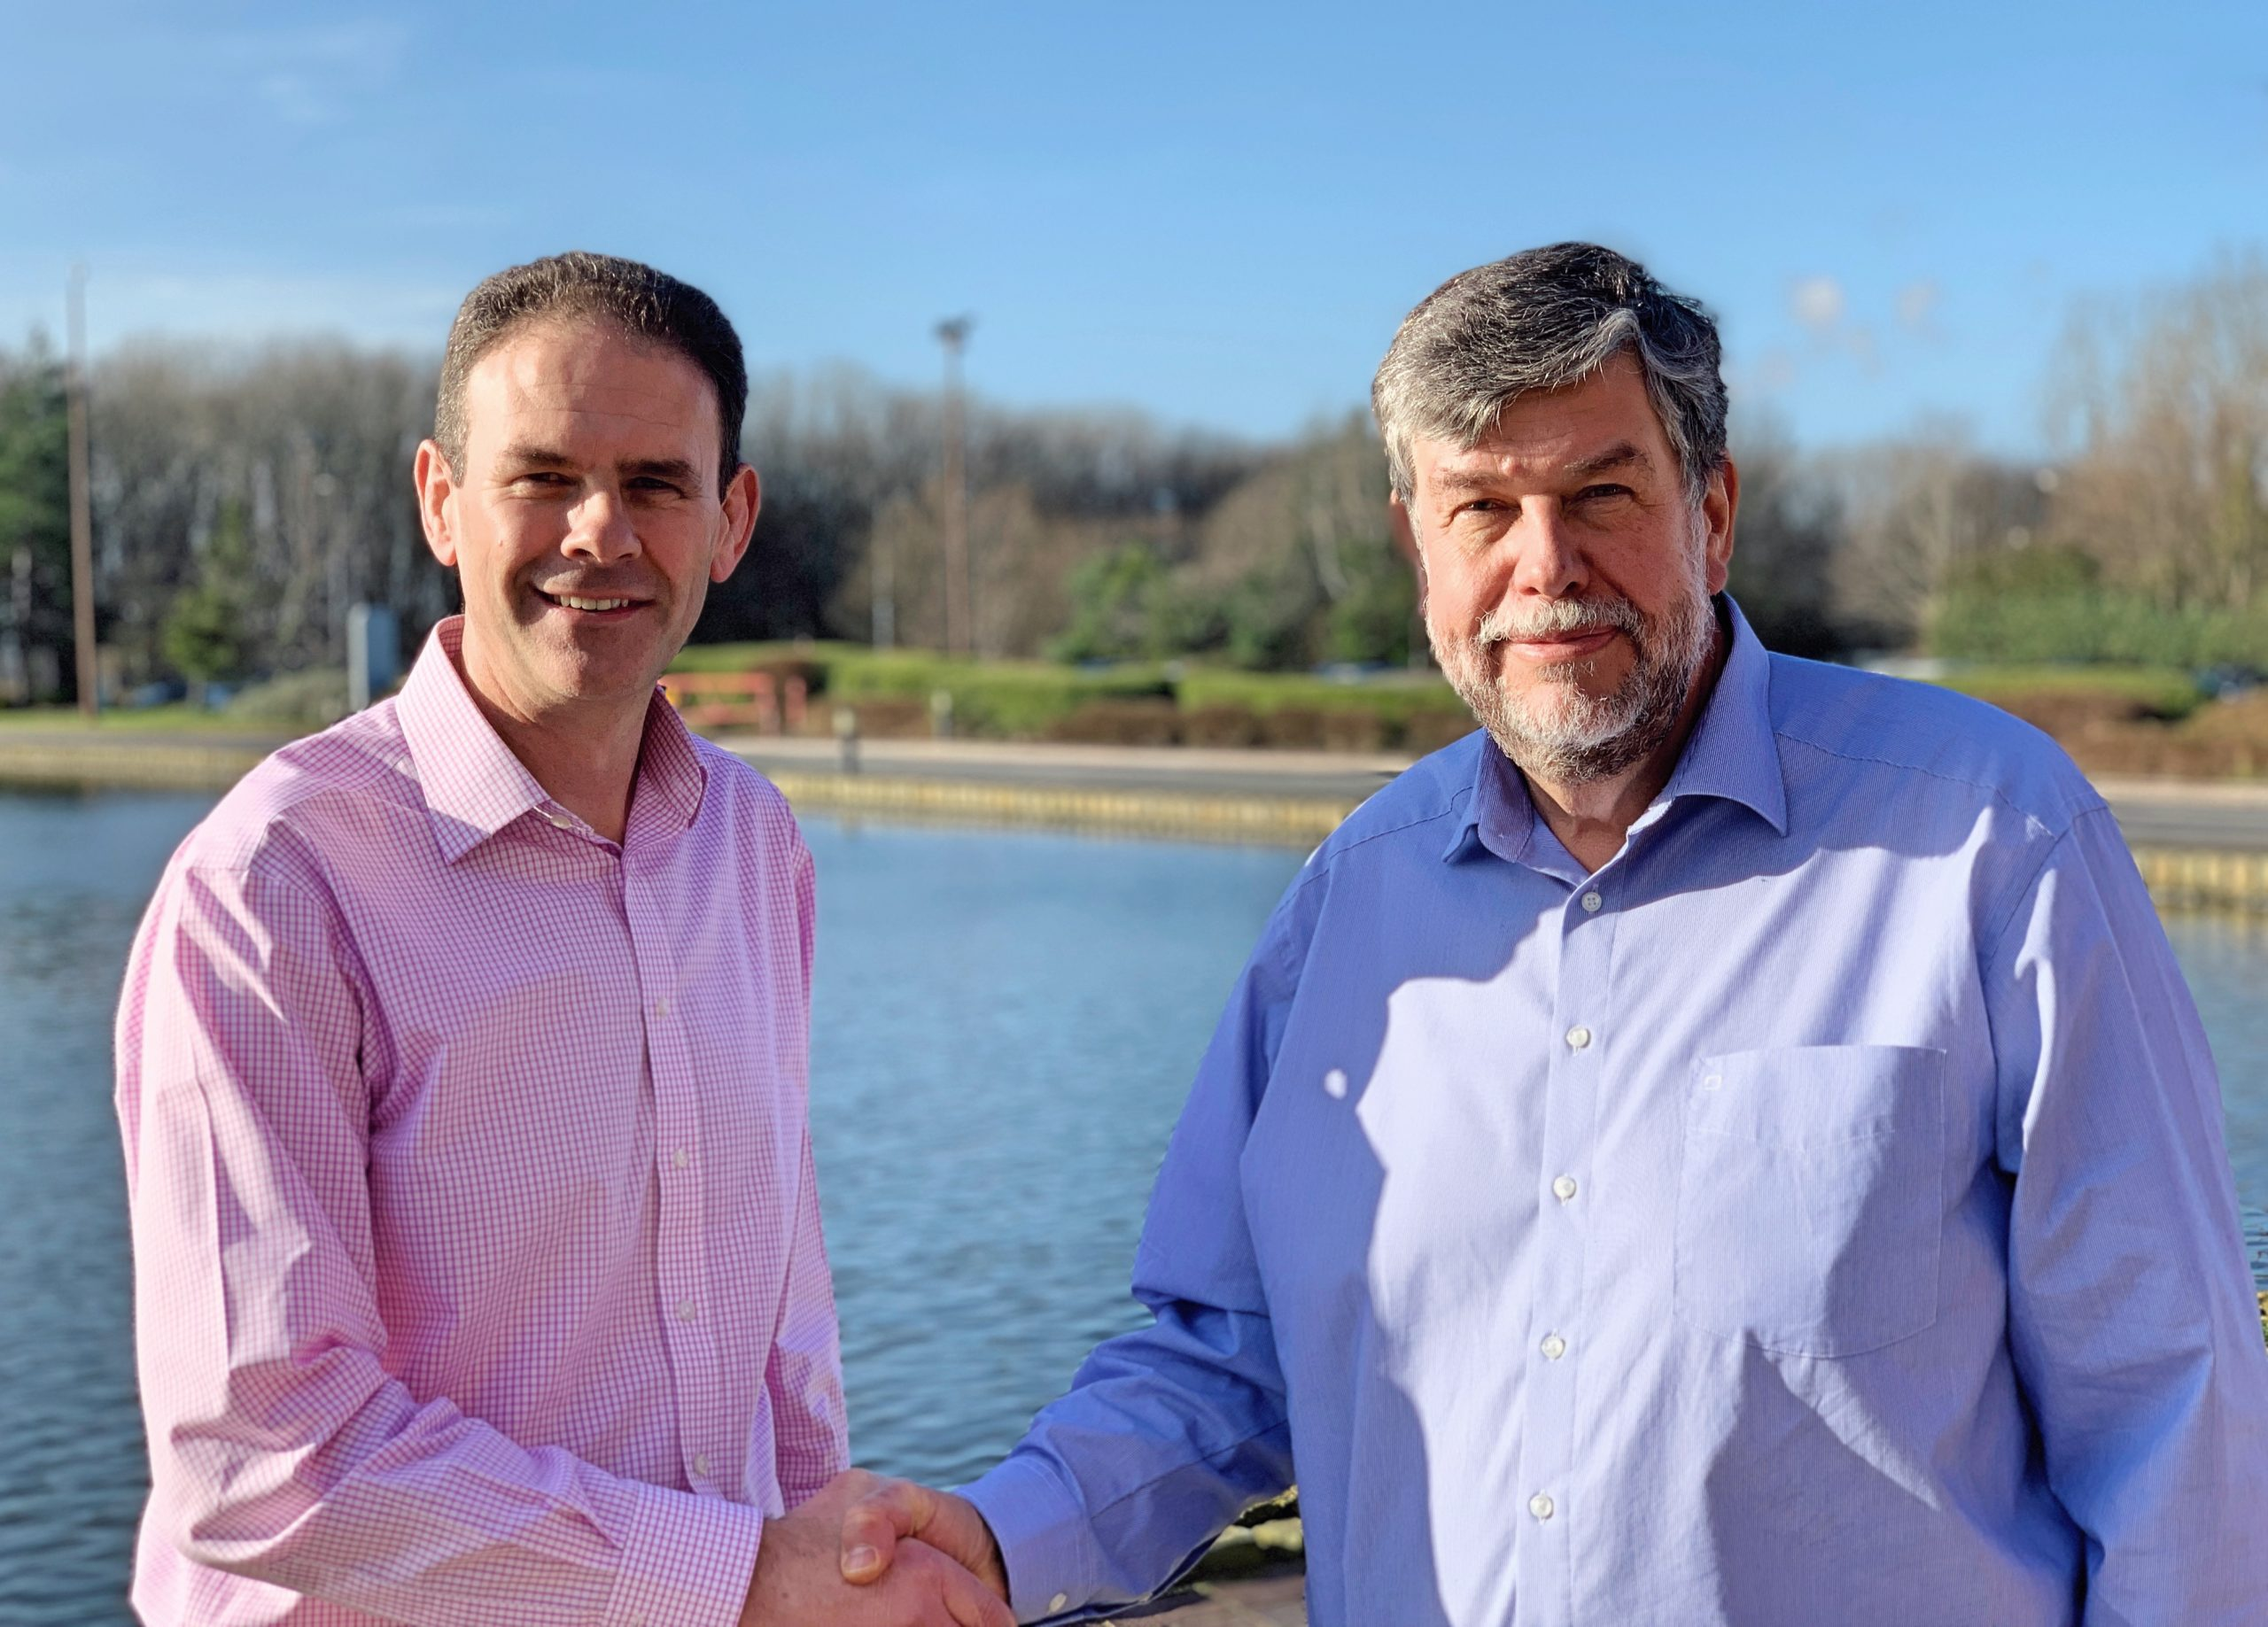 Pictured: Frank Millar (left) to become the new CEO of CPI, succeeding Nigel Perry (right), the current CEO